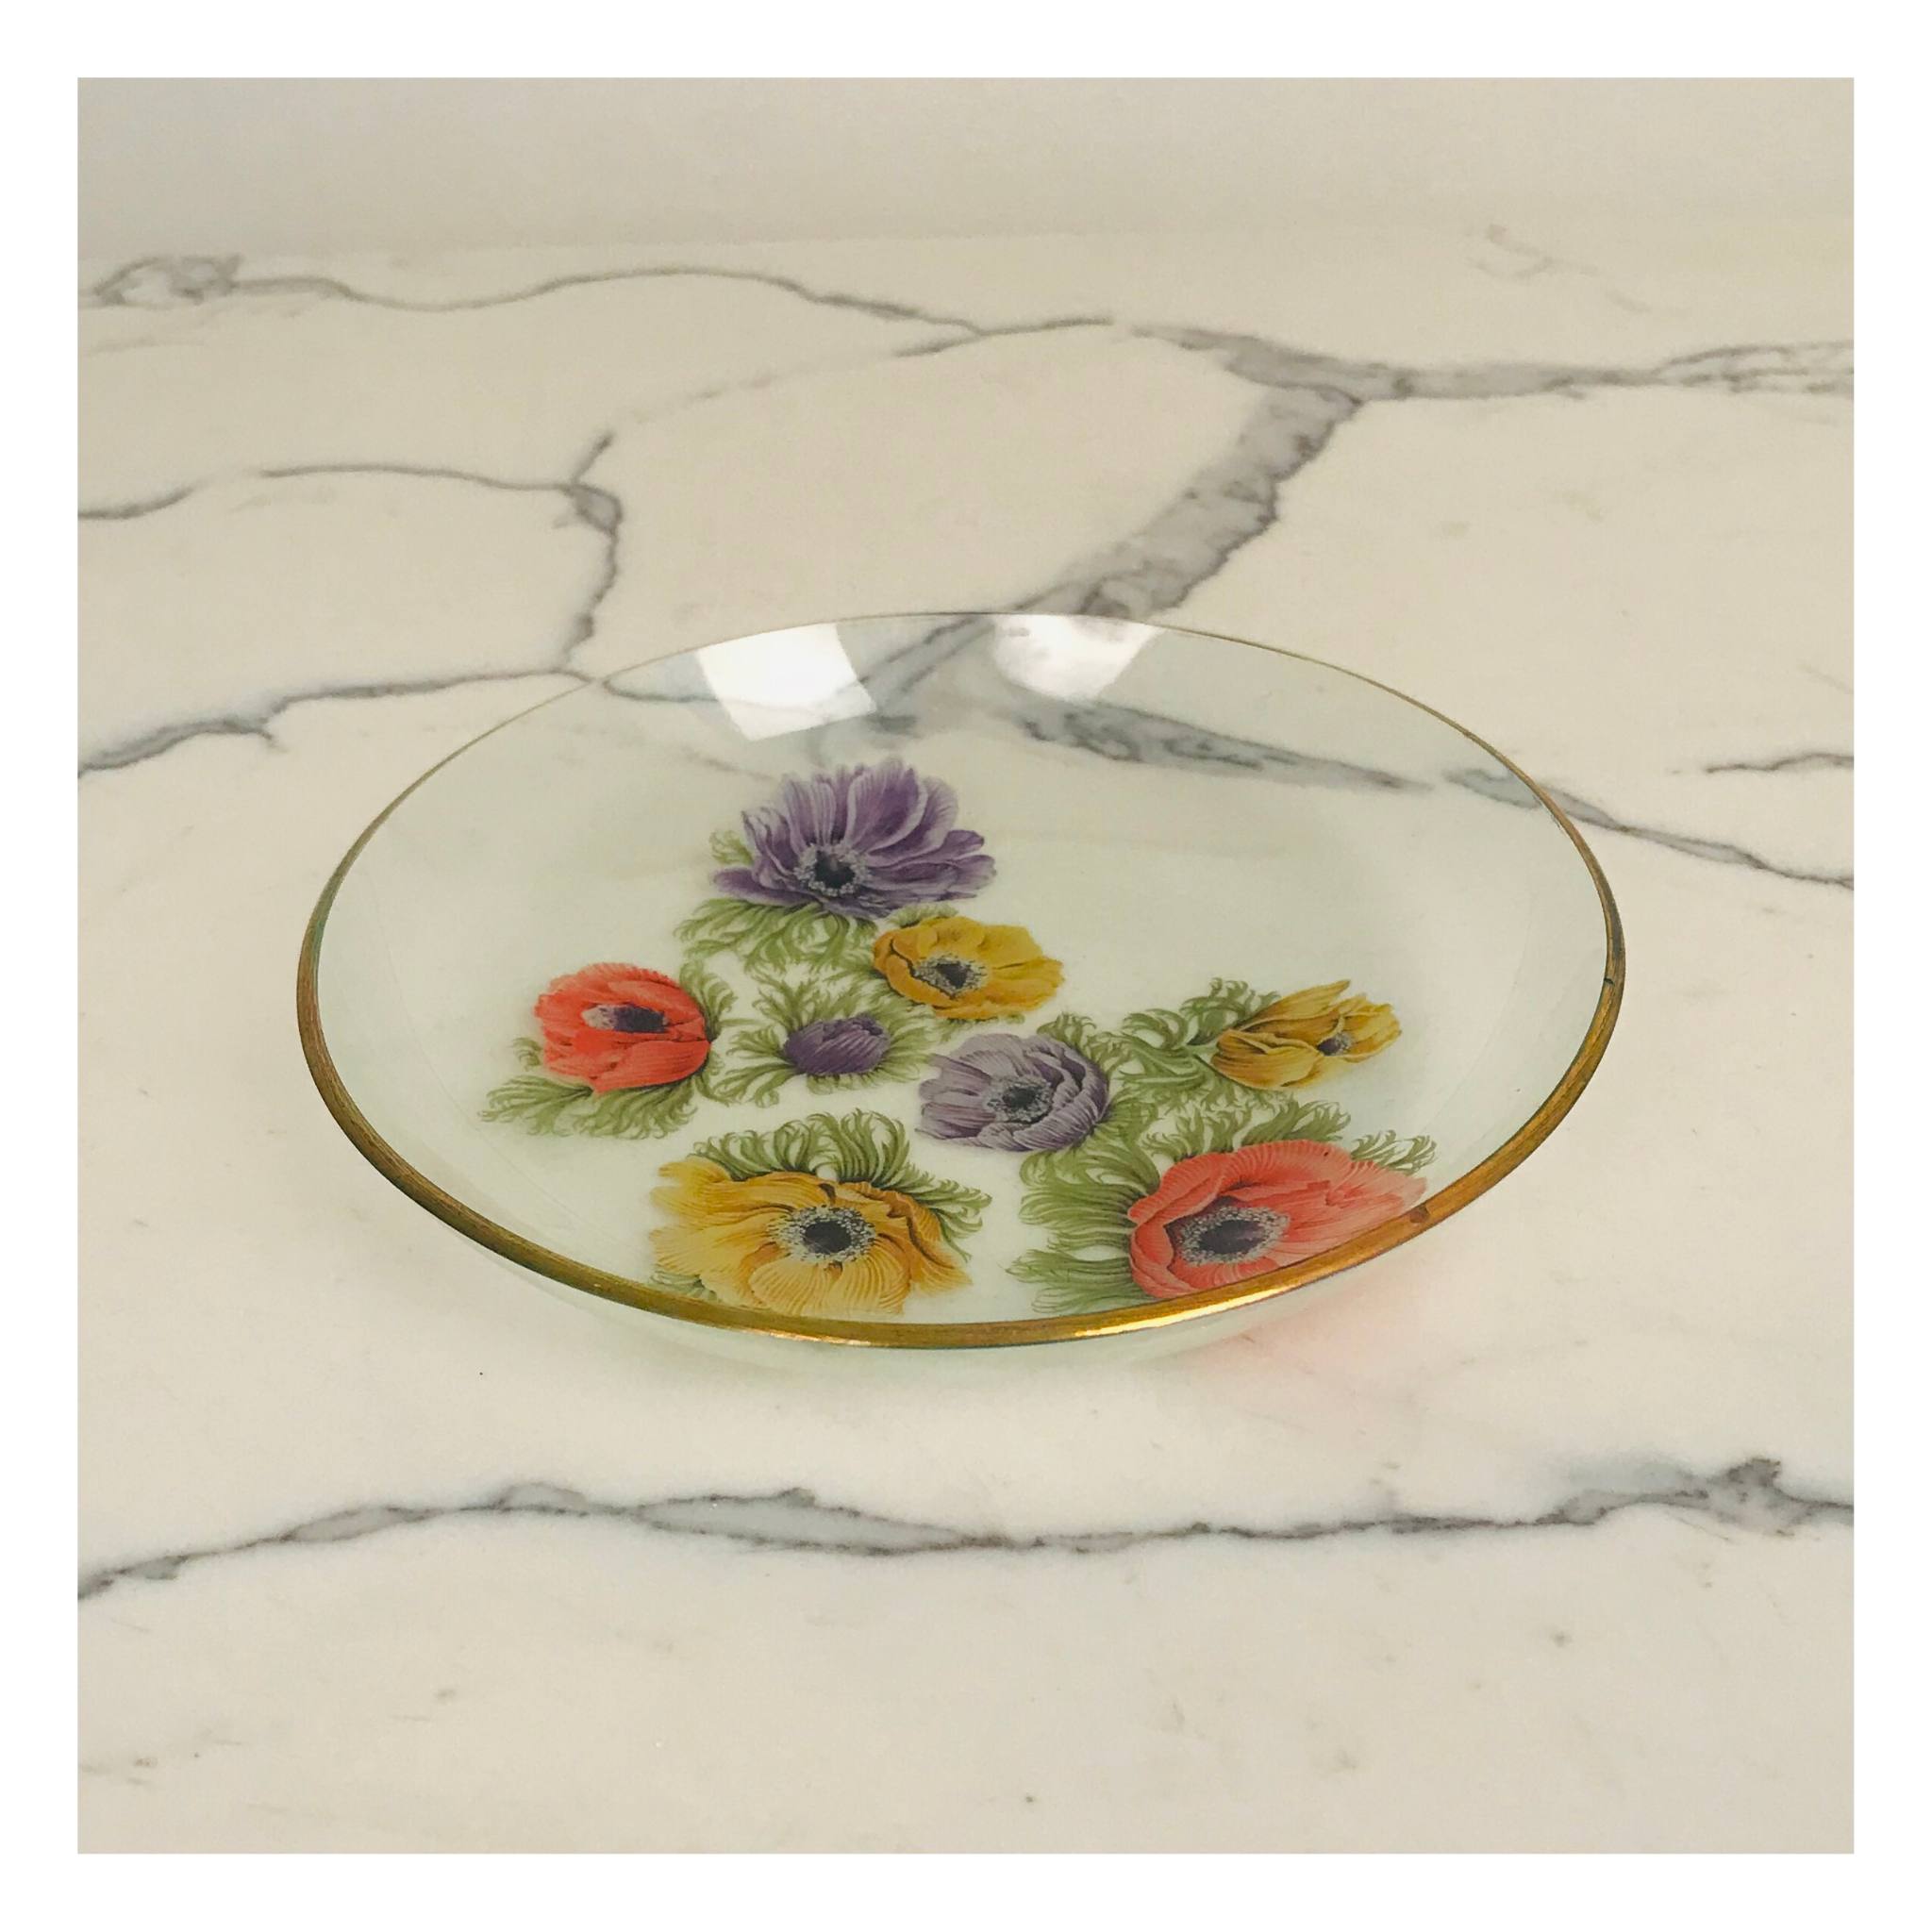 Glass Plate with Flower Print